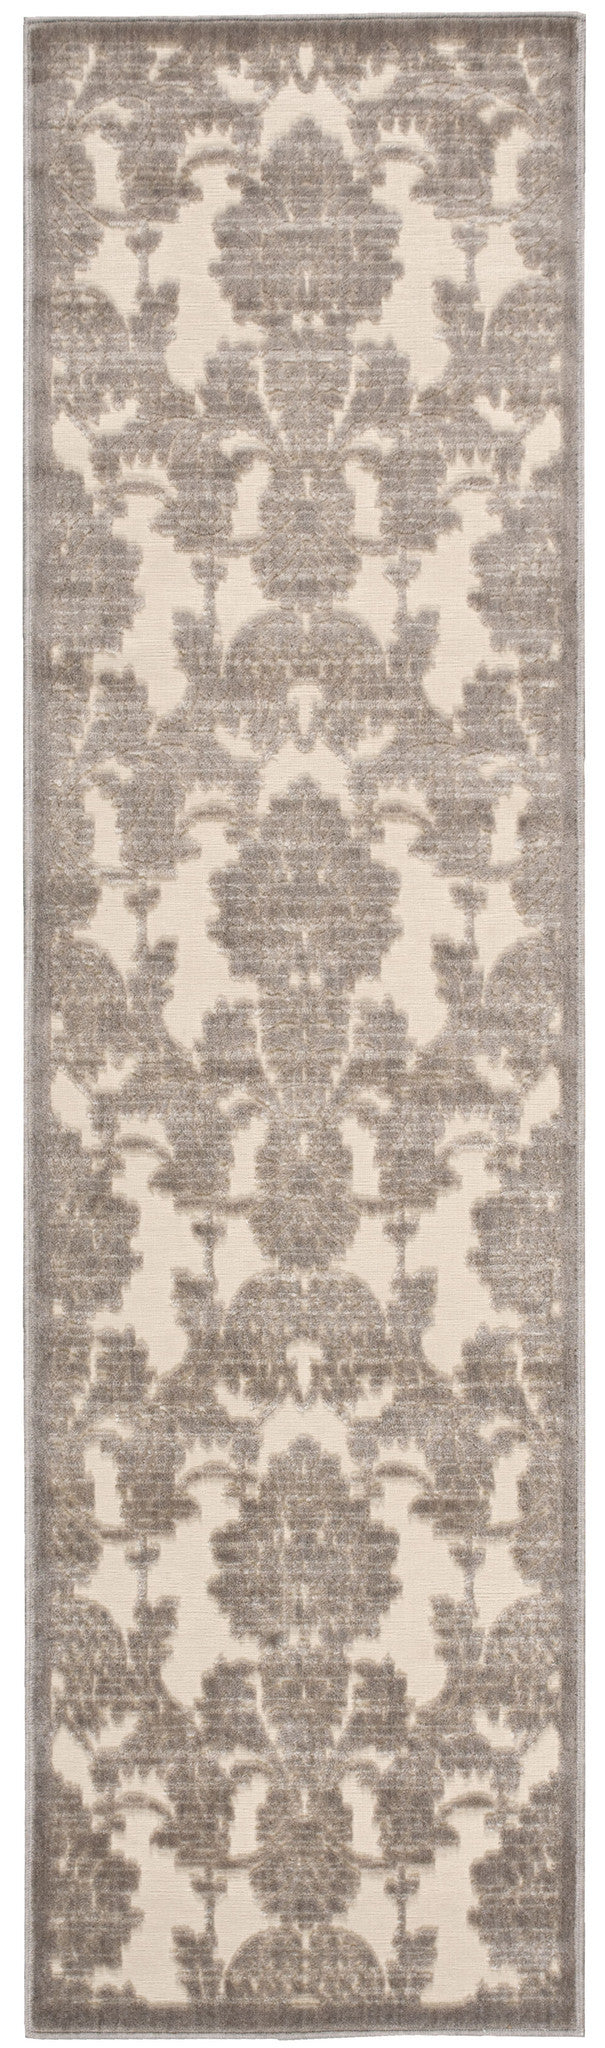 Nourison Graphic Illusions Ivory Latte Area Rug GIL03 IVLAT